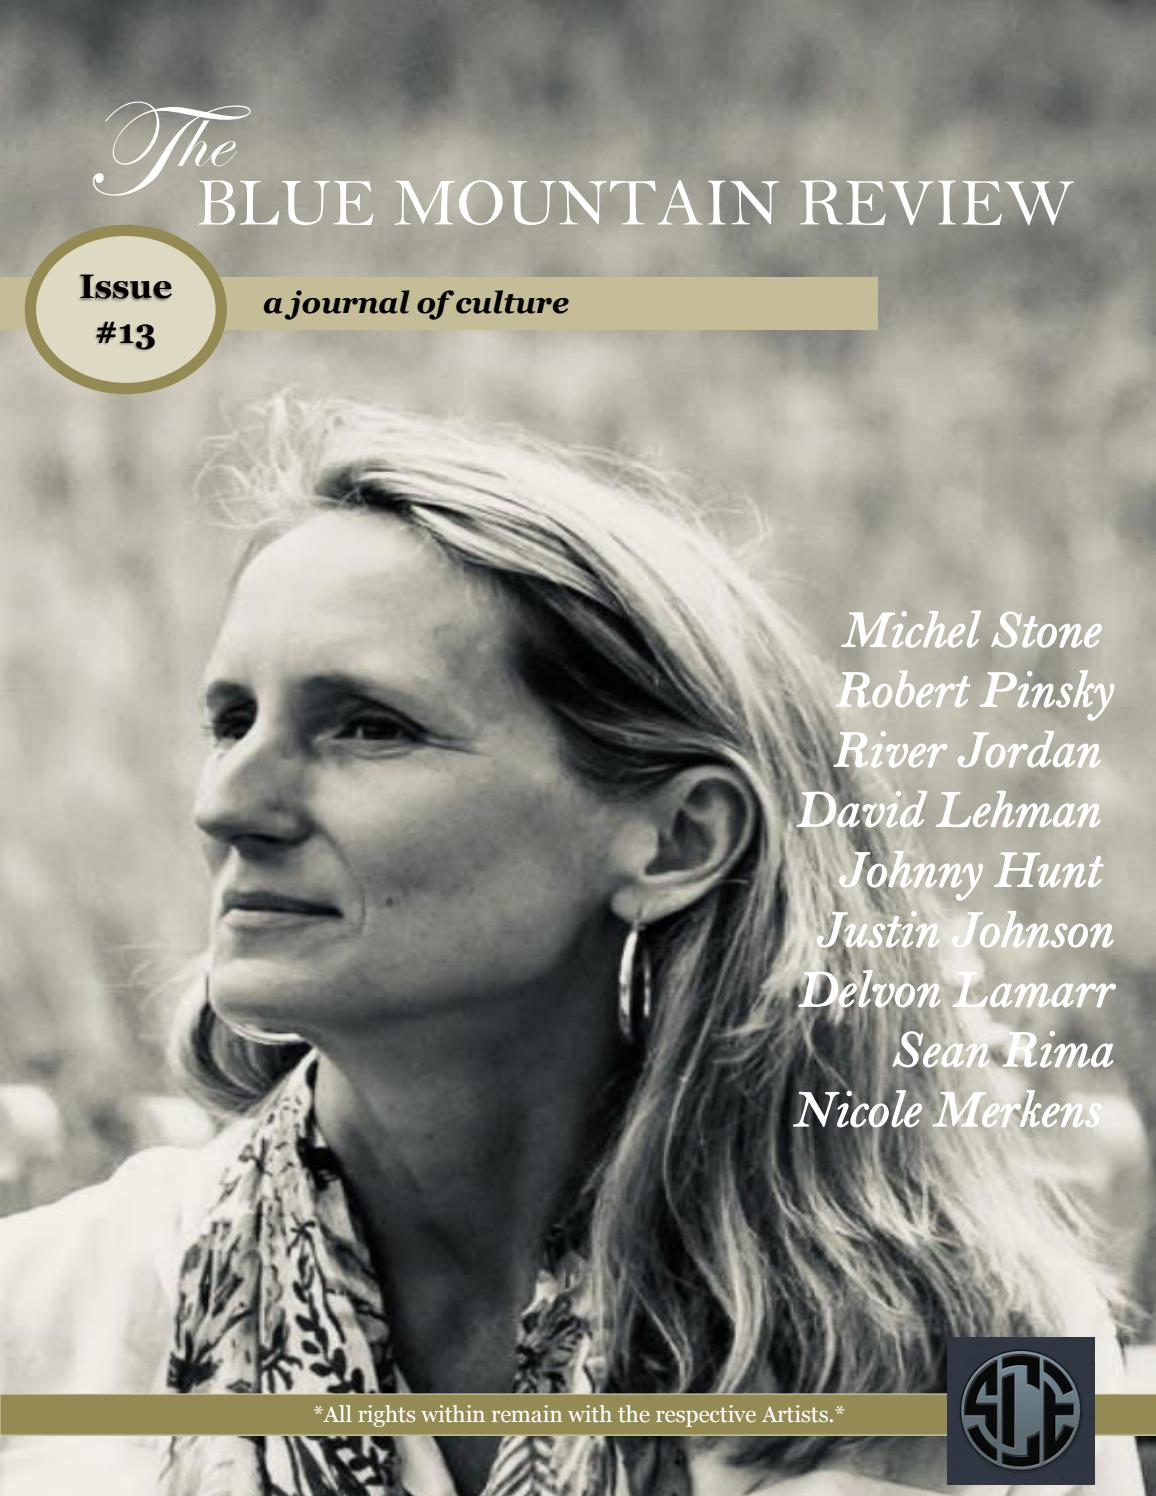 1b0a35049bf The Blue Mountain Review Issue 13 by CollectiveMedia - issuu